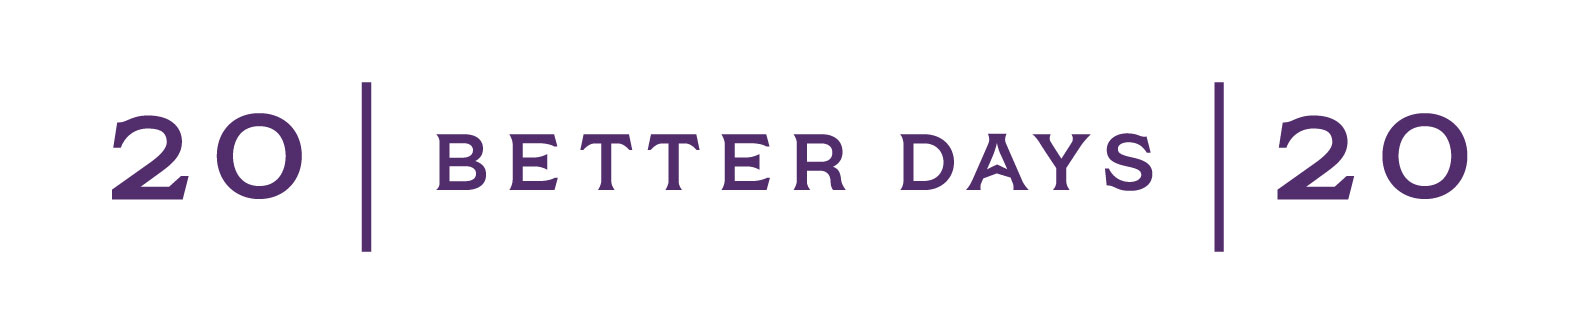 Betterdays2020_Utah Council for Citizen Diplomacy